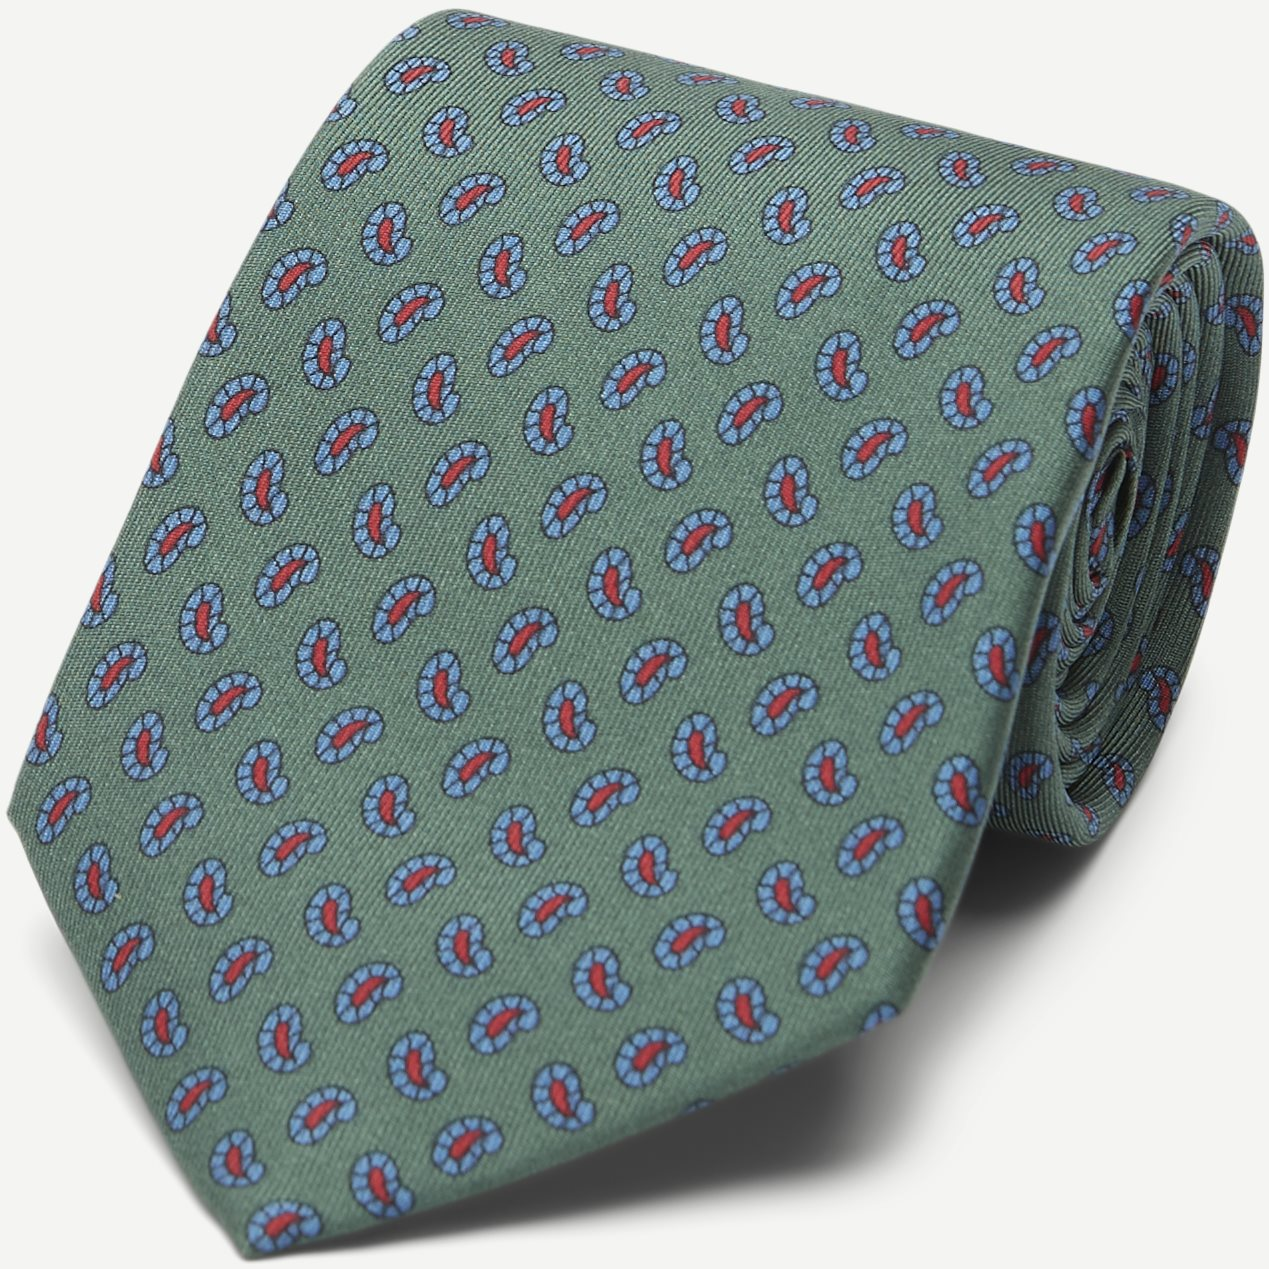 The Green Printed Counselor Tie 8 cm - Slipsar - Grön